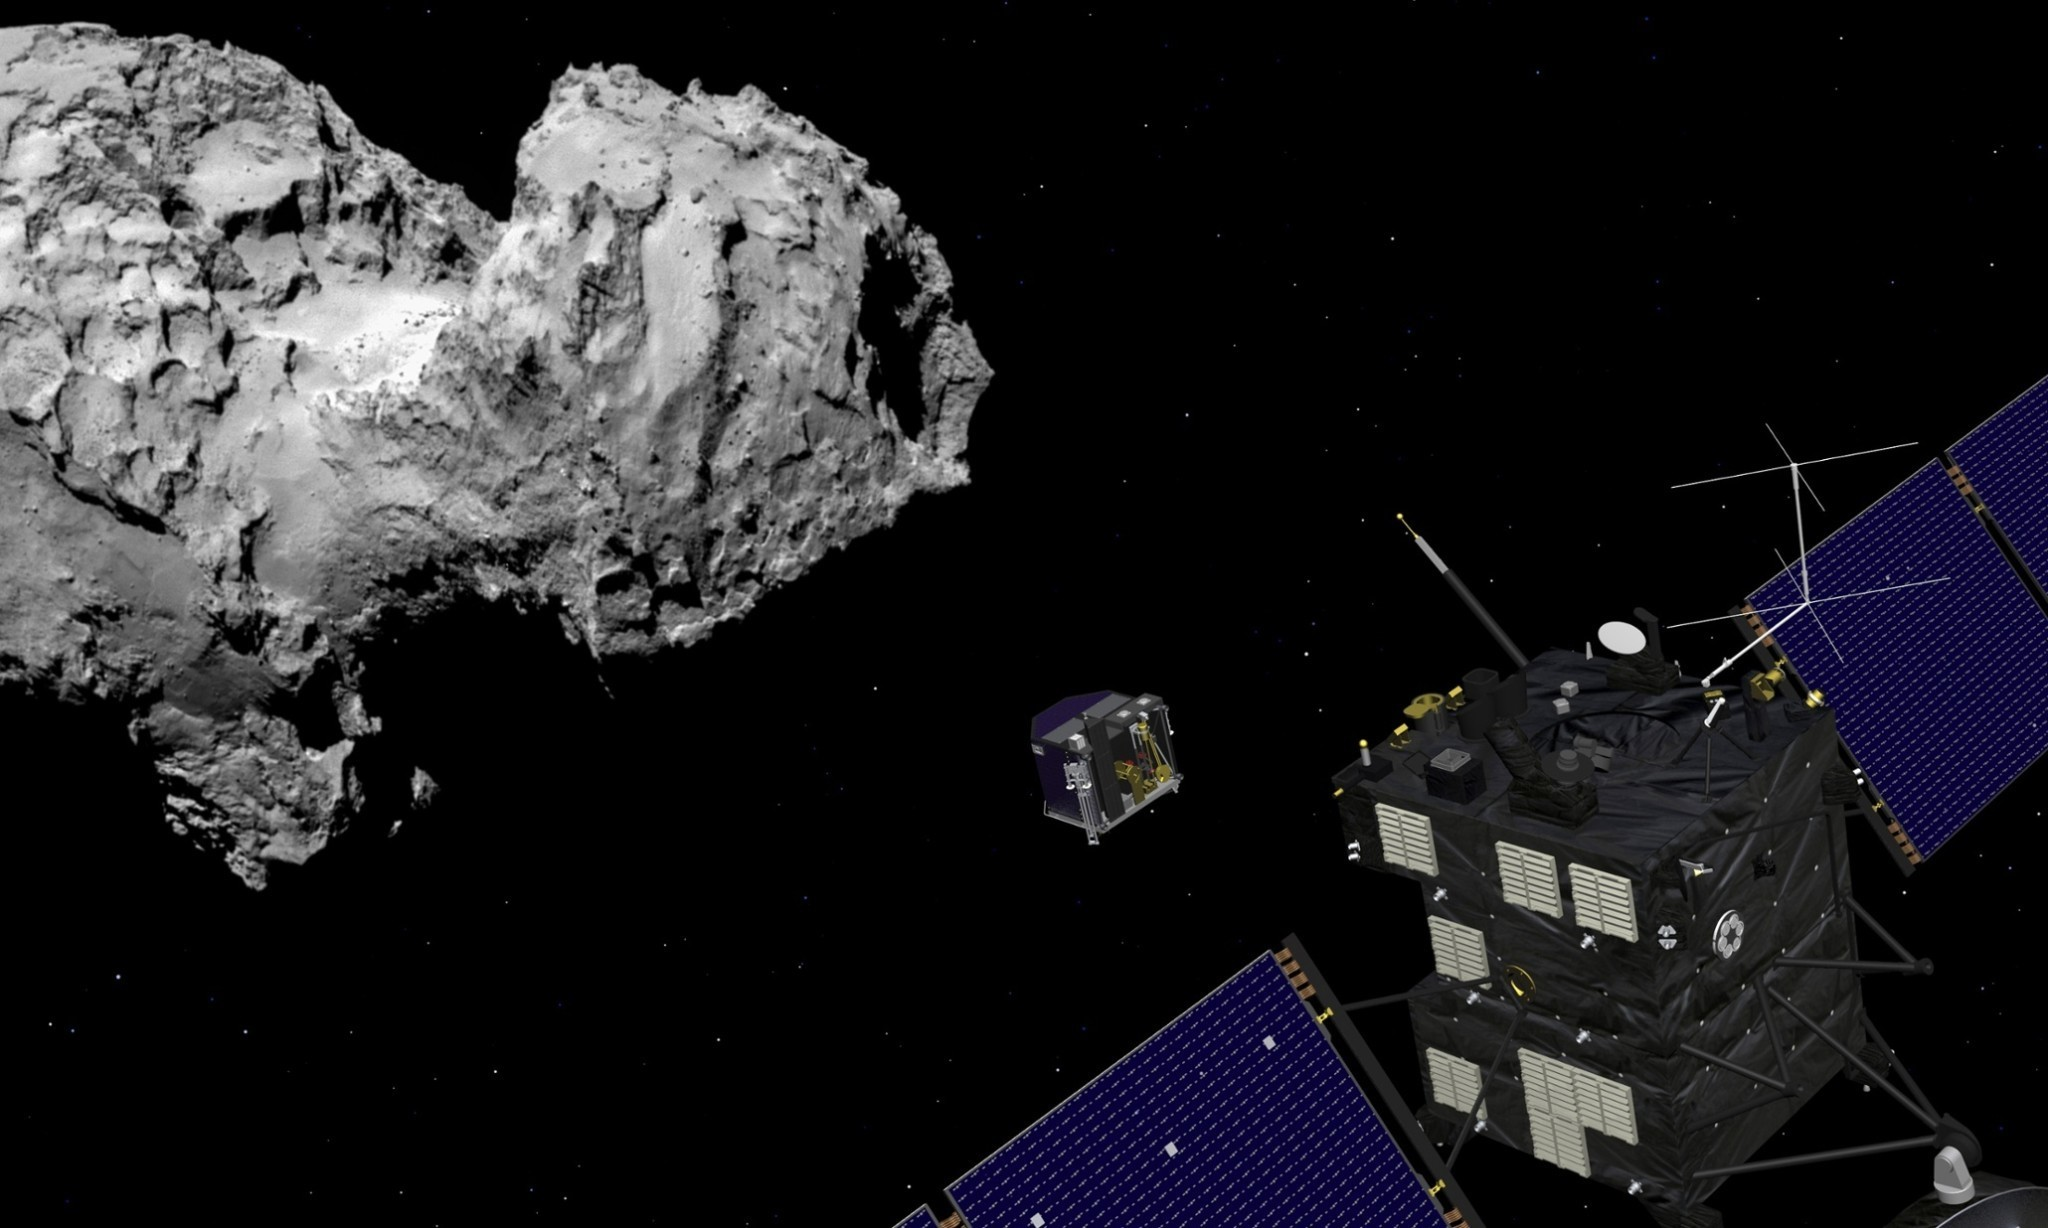 Rosetta comet landing on course despite wake-up glitch